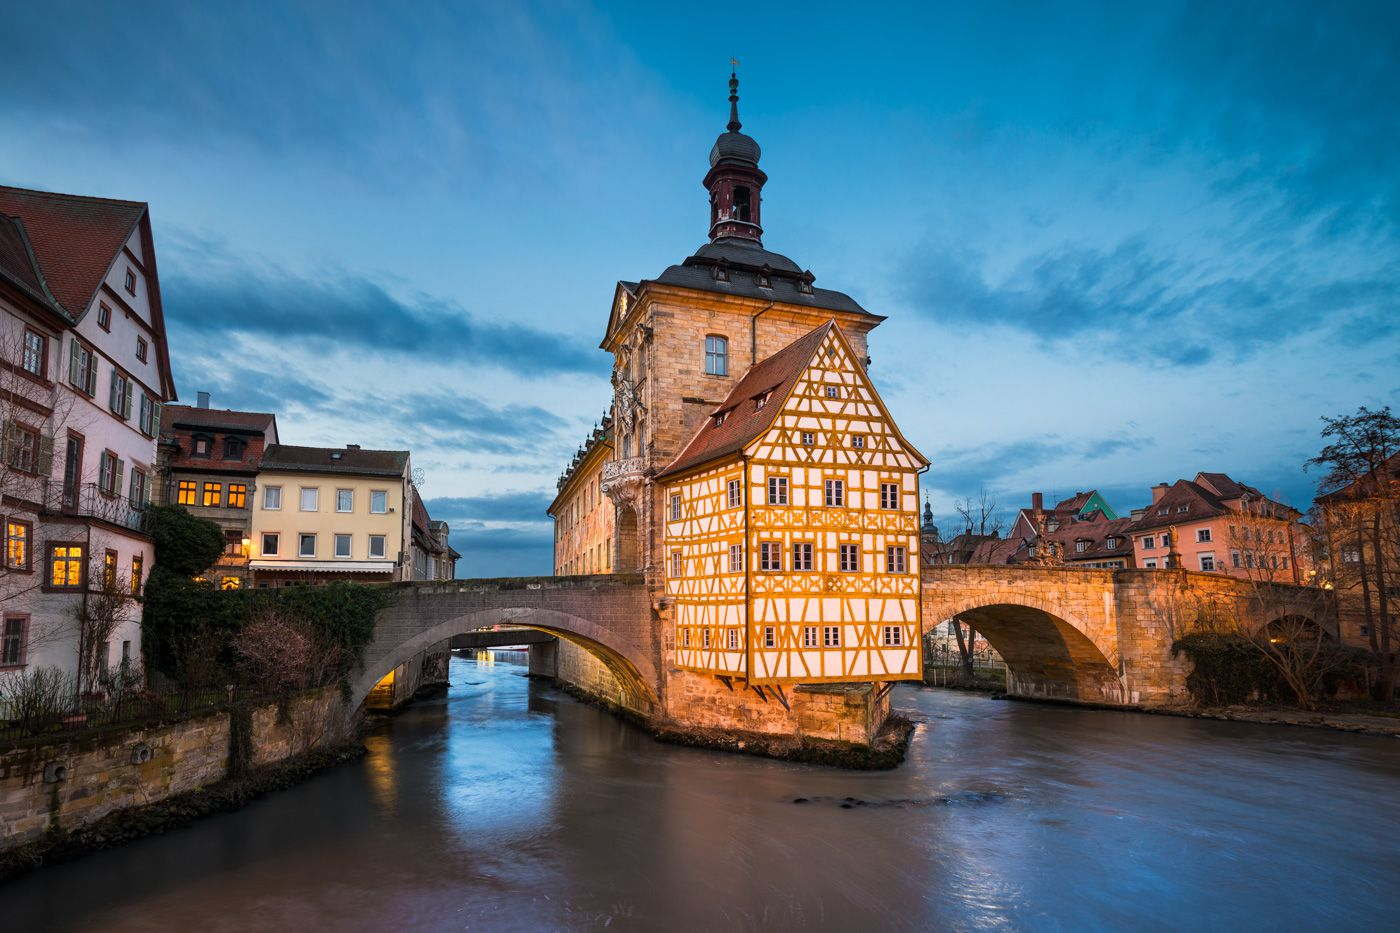 Vacation Couple Blog Bamberg Travel Cost Average Price Of A Vacation To